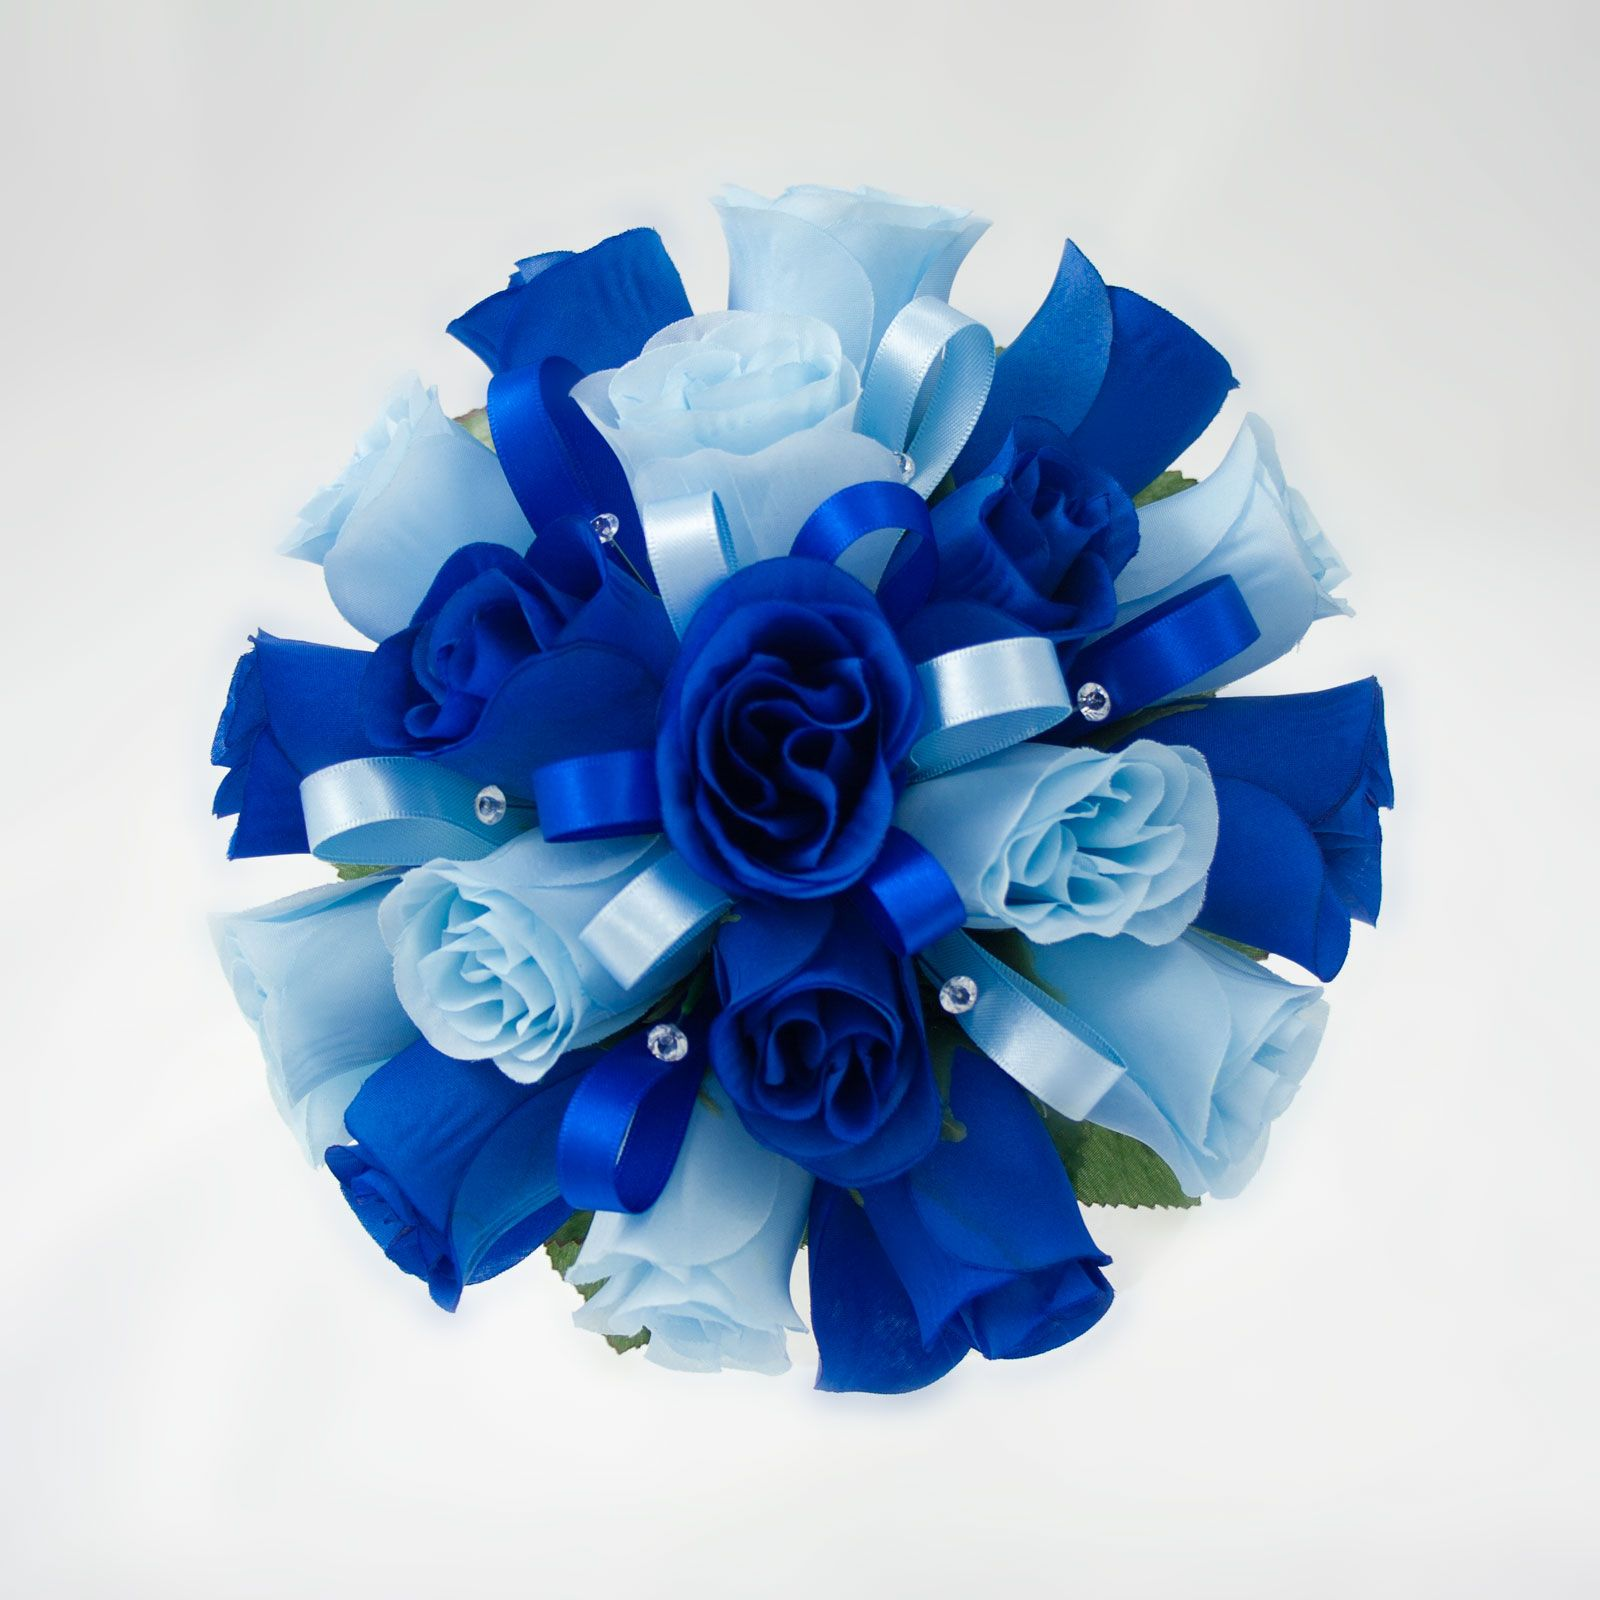 Royal blue flower arrangements for weddings google search royal blue and baby blue wedding bouquet royal blue and white with silver ribbon izmirmasajfo